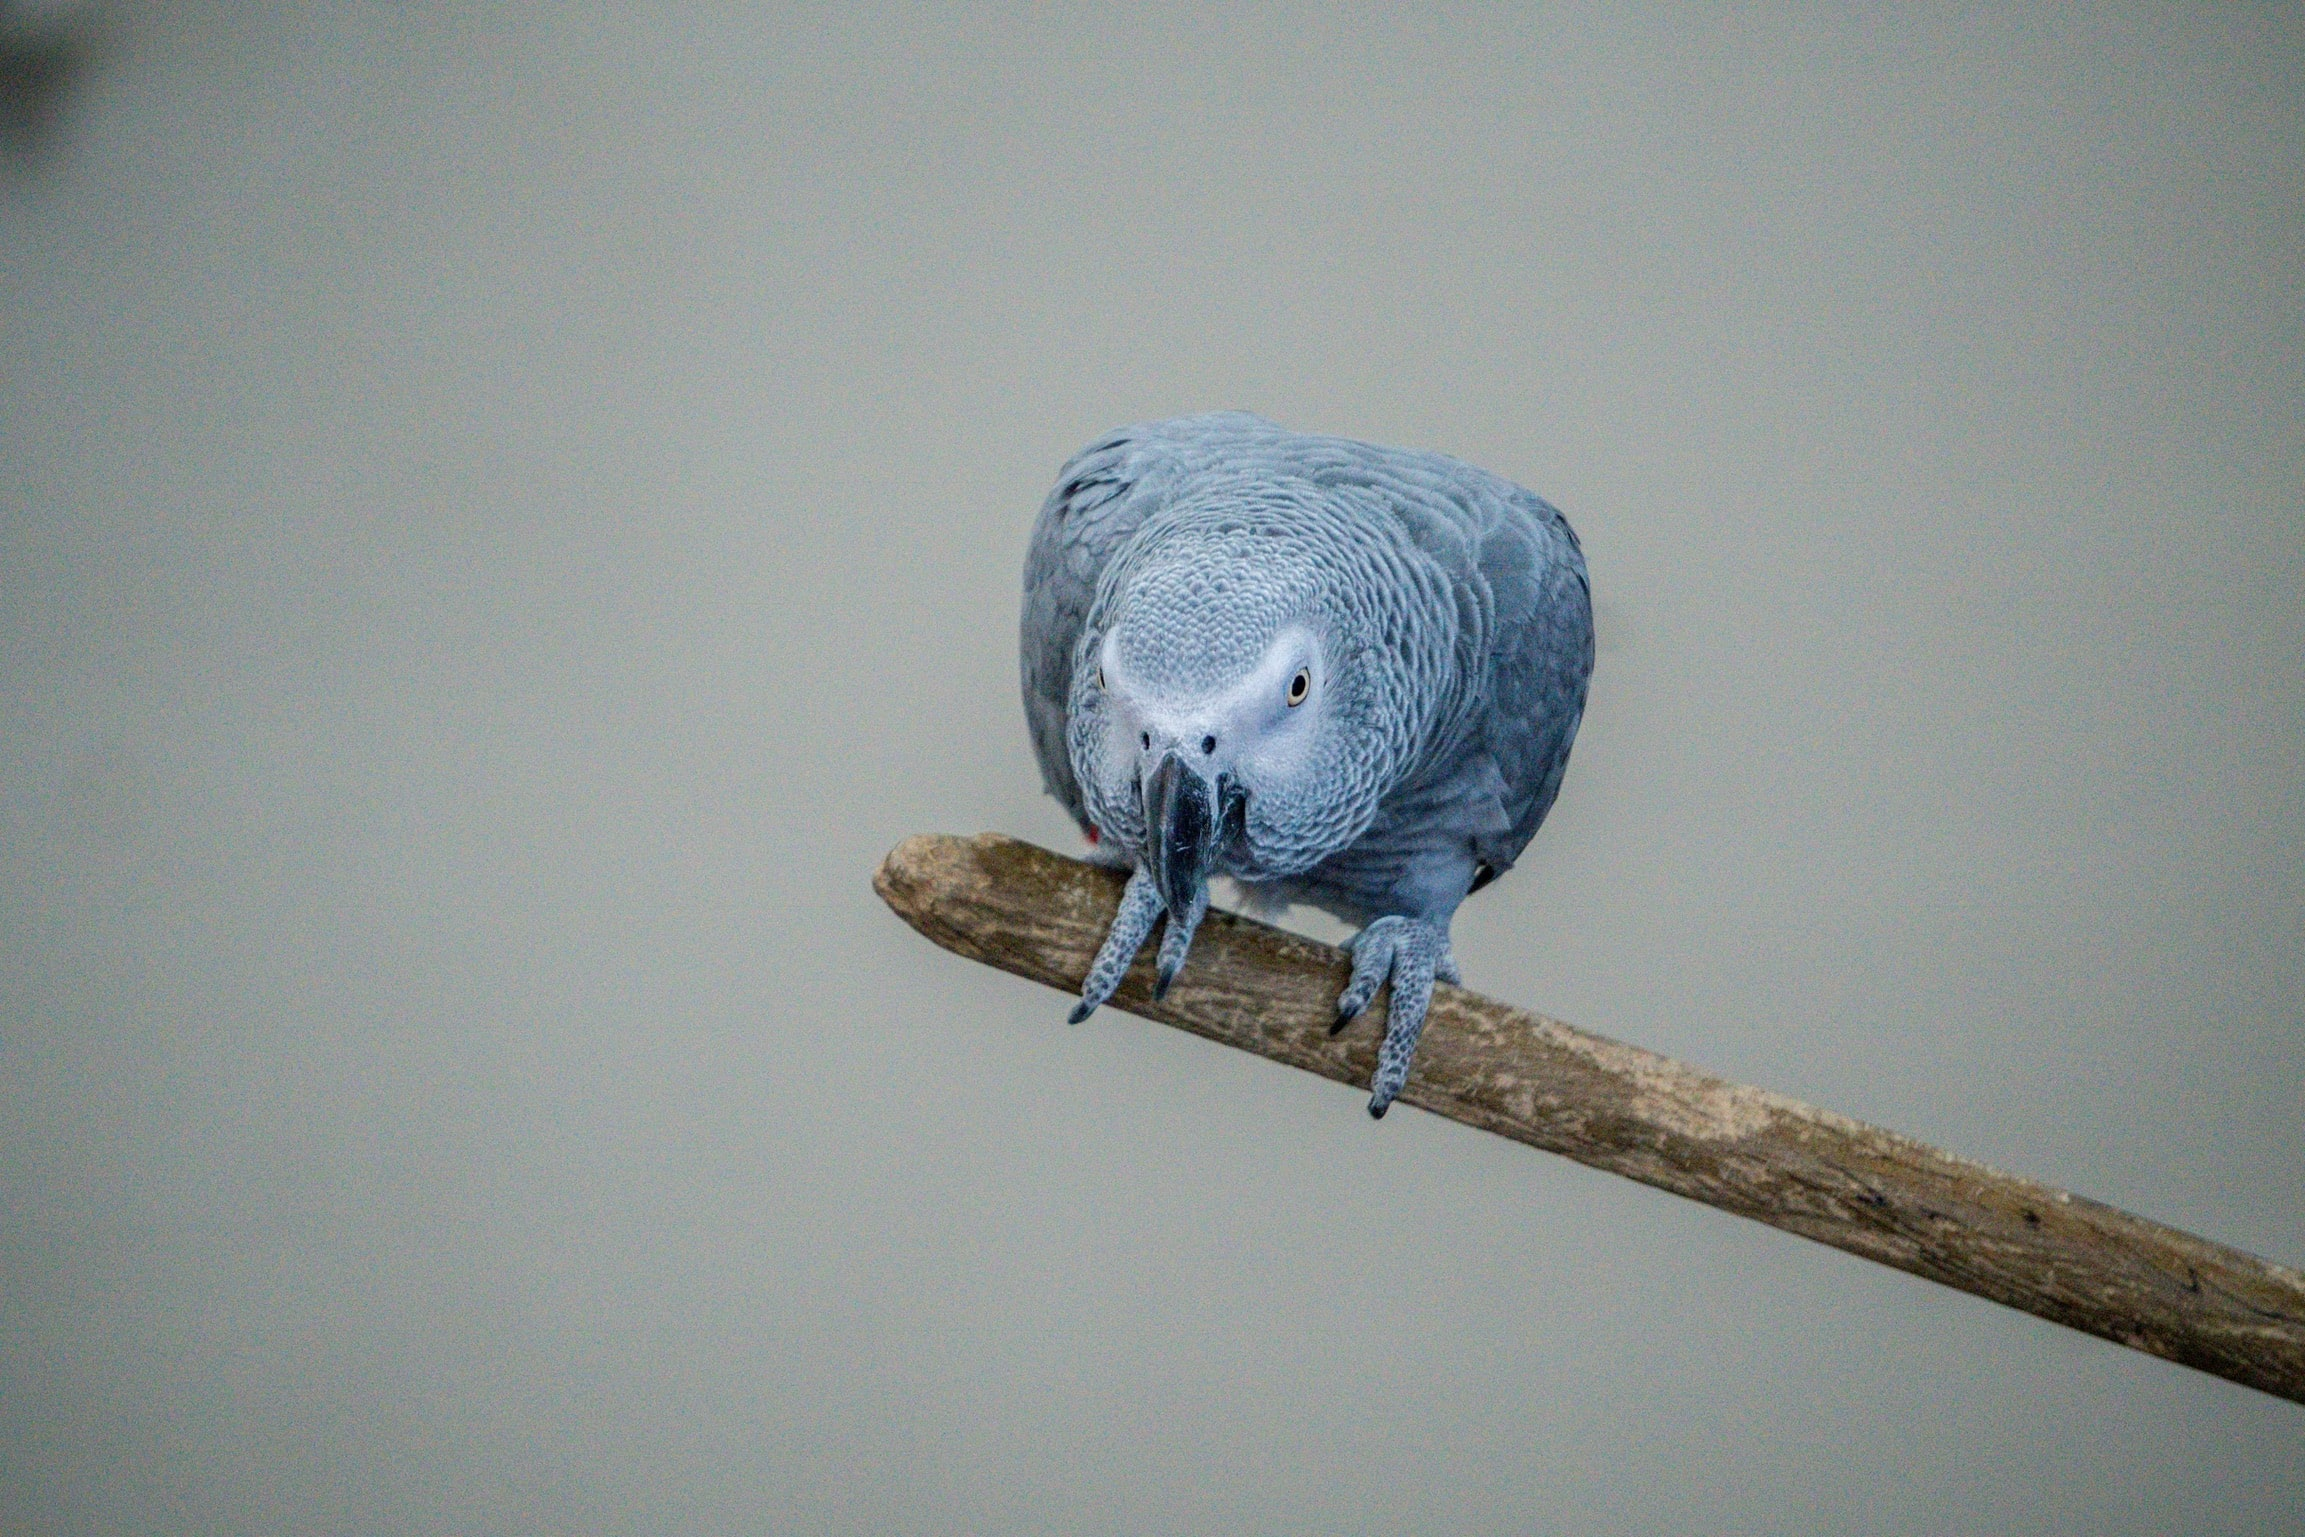 African gray parrot perched on branch